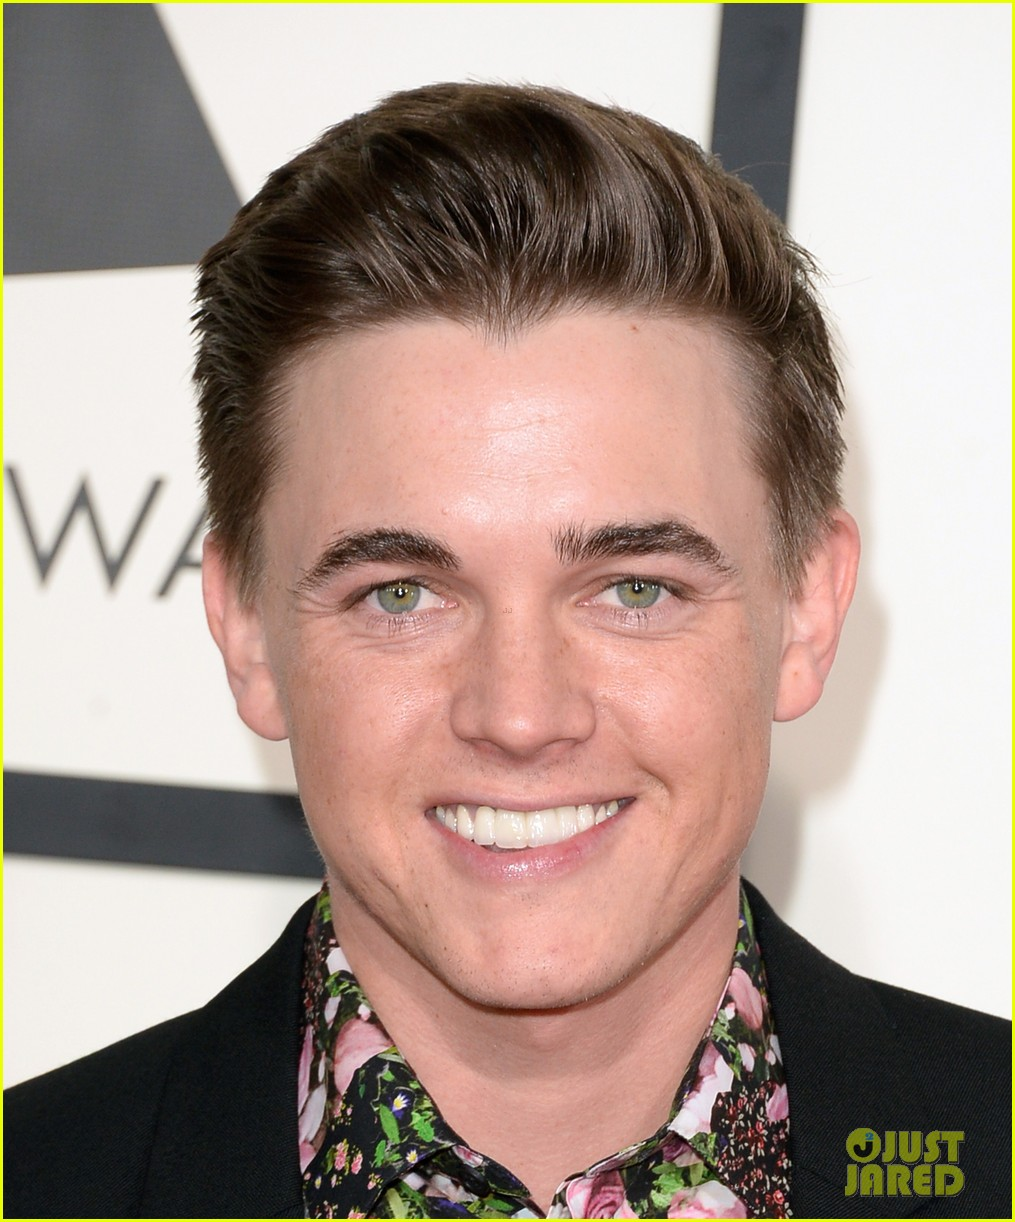 Jesse McCartney - Grammys 2014 Red Carpet - jesse-mccartney-grammys-2014-red-carpet-04